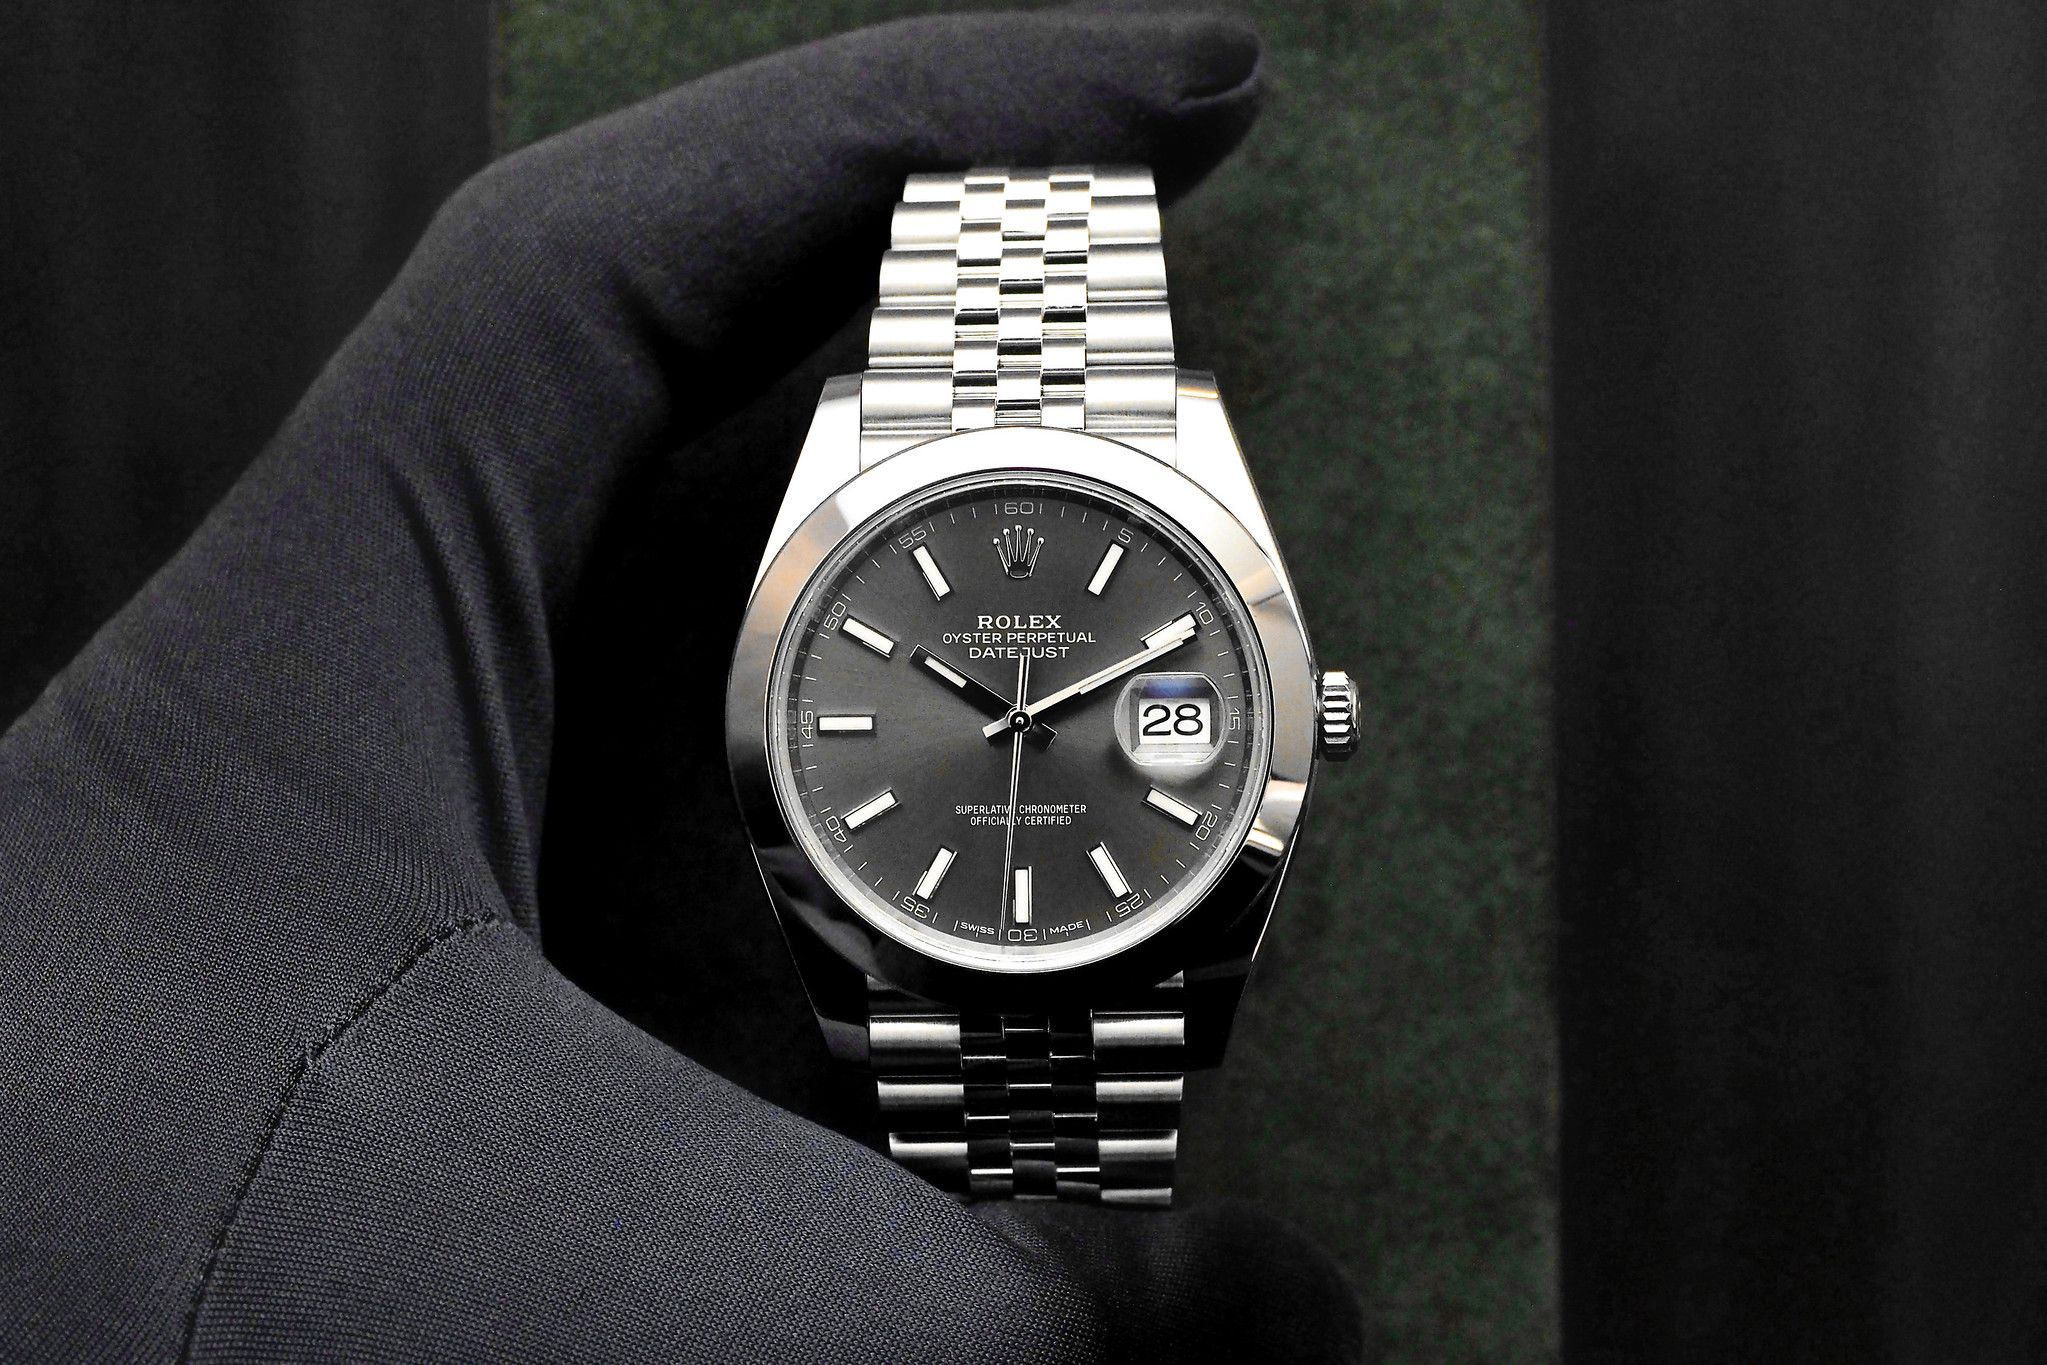 One of the more interesting watches to come from Rolex this year was the Rolex Datejust 41 in steel with a Dark Rhodium dial and Jubilee five-piece link bracelet. With a larger case size (41 mm in diameter), a smooth (not fluted) bezel, and 18K white gold indexes on top of a real rhodium plated dial, Rolex has made a watch that is aesthetically much more pleasing to my eye. The Datejust, quite frankly, has never appealed to me, until now. Rolex Datejust 41 in steel with white gold fluted…